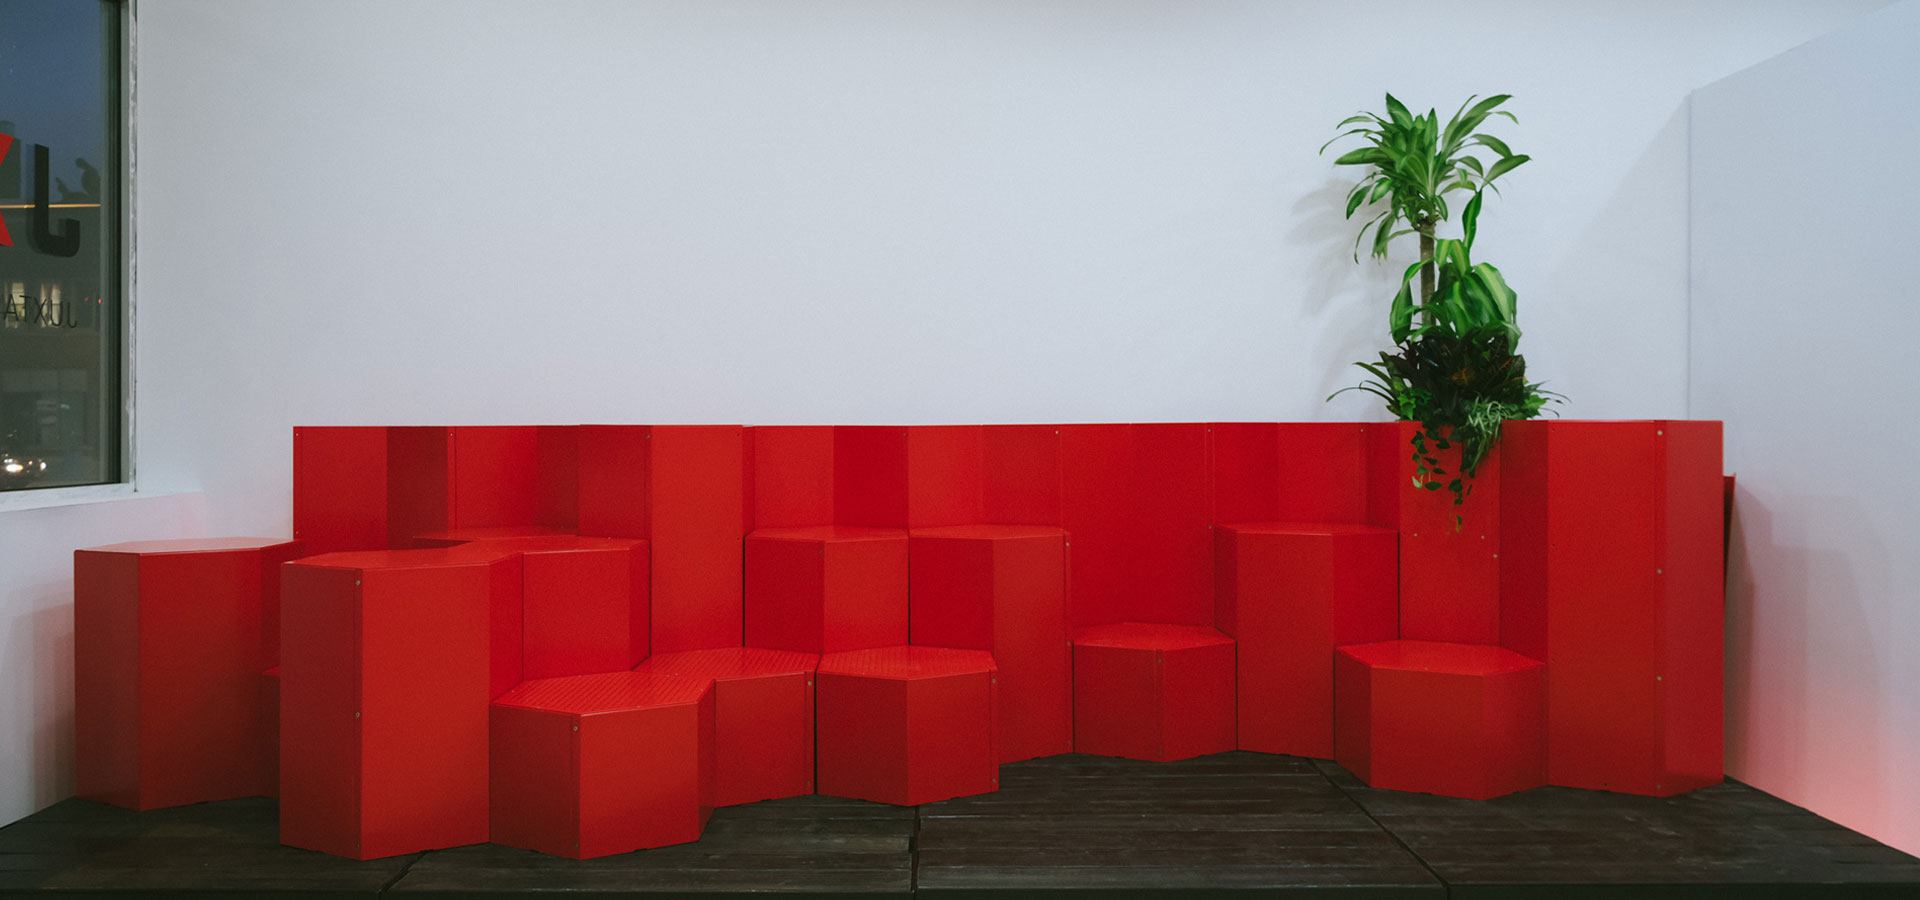 Custom seating in the Juxtaposition campus.